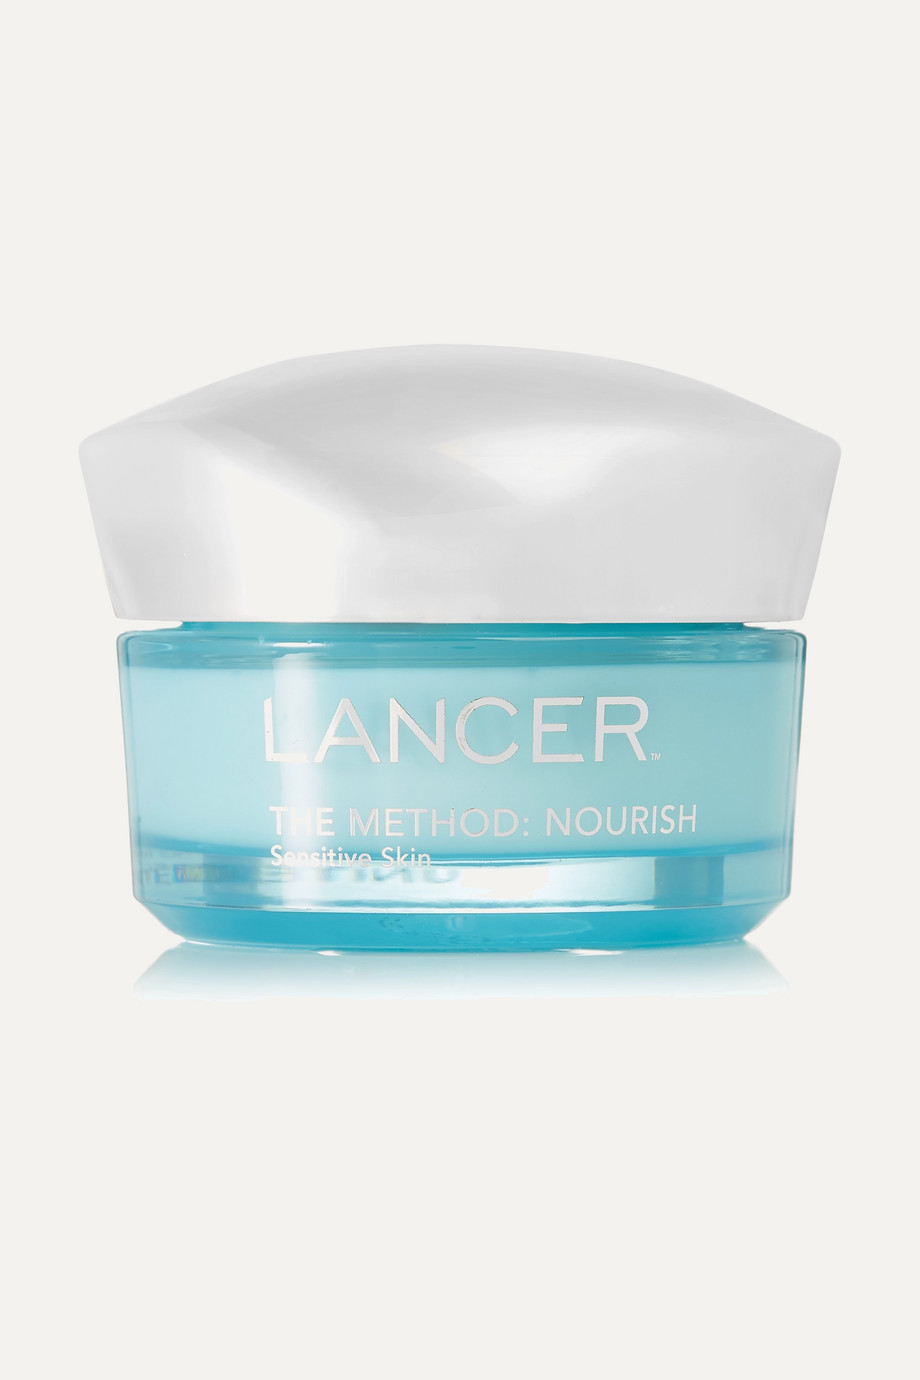 Lancer The Method: Nourish Sensitive Skin, 50ml